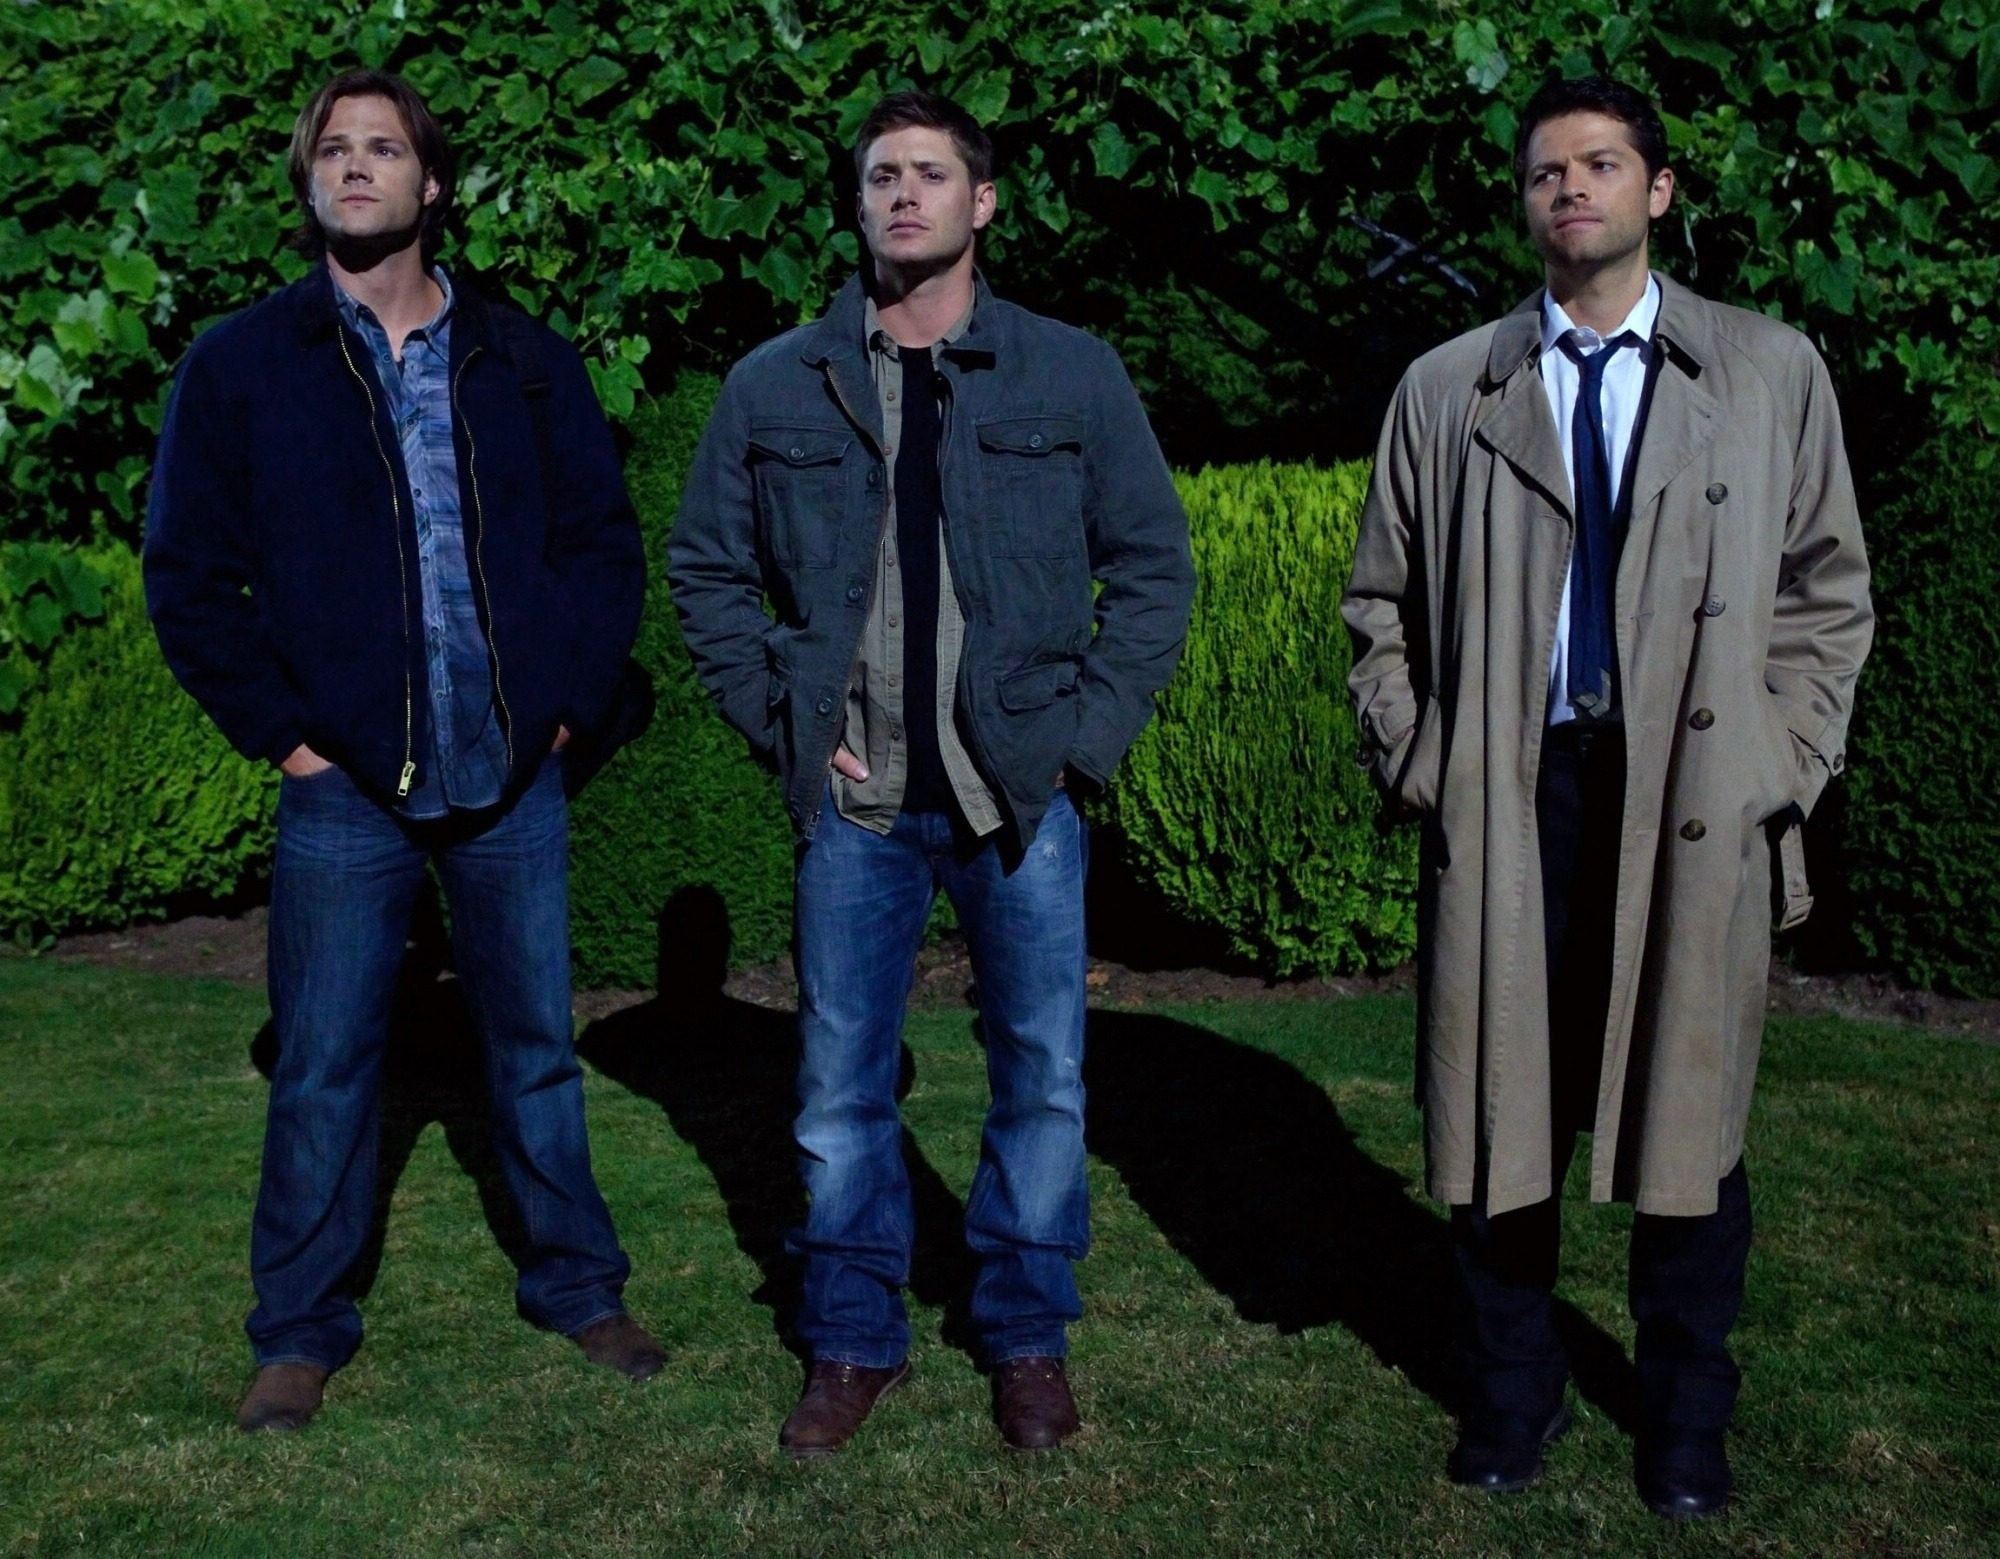 Supernatural-6x03-jared-padalecki-and-misha-collins-34192395-2000-1559